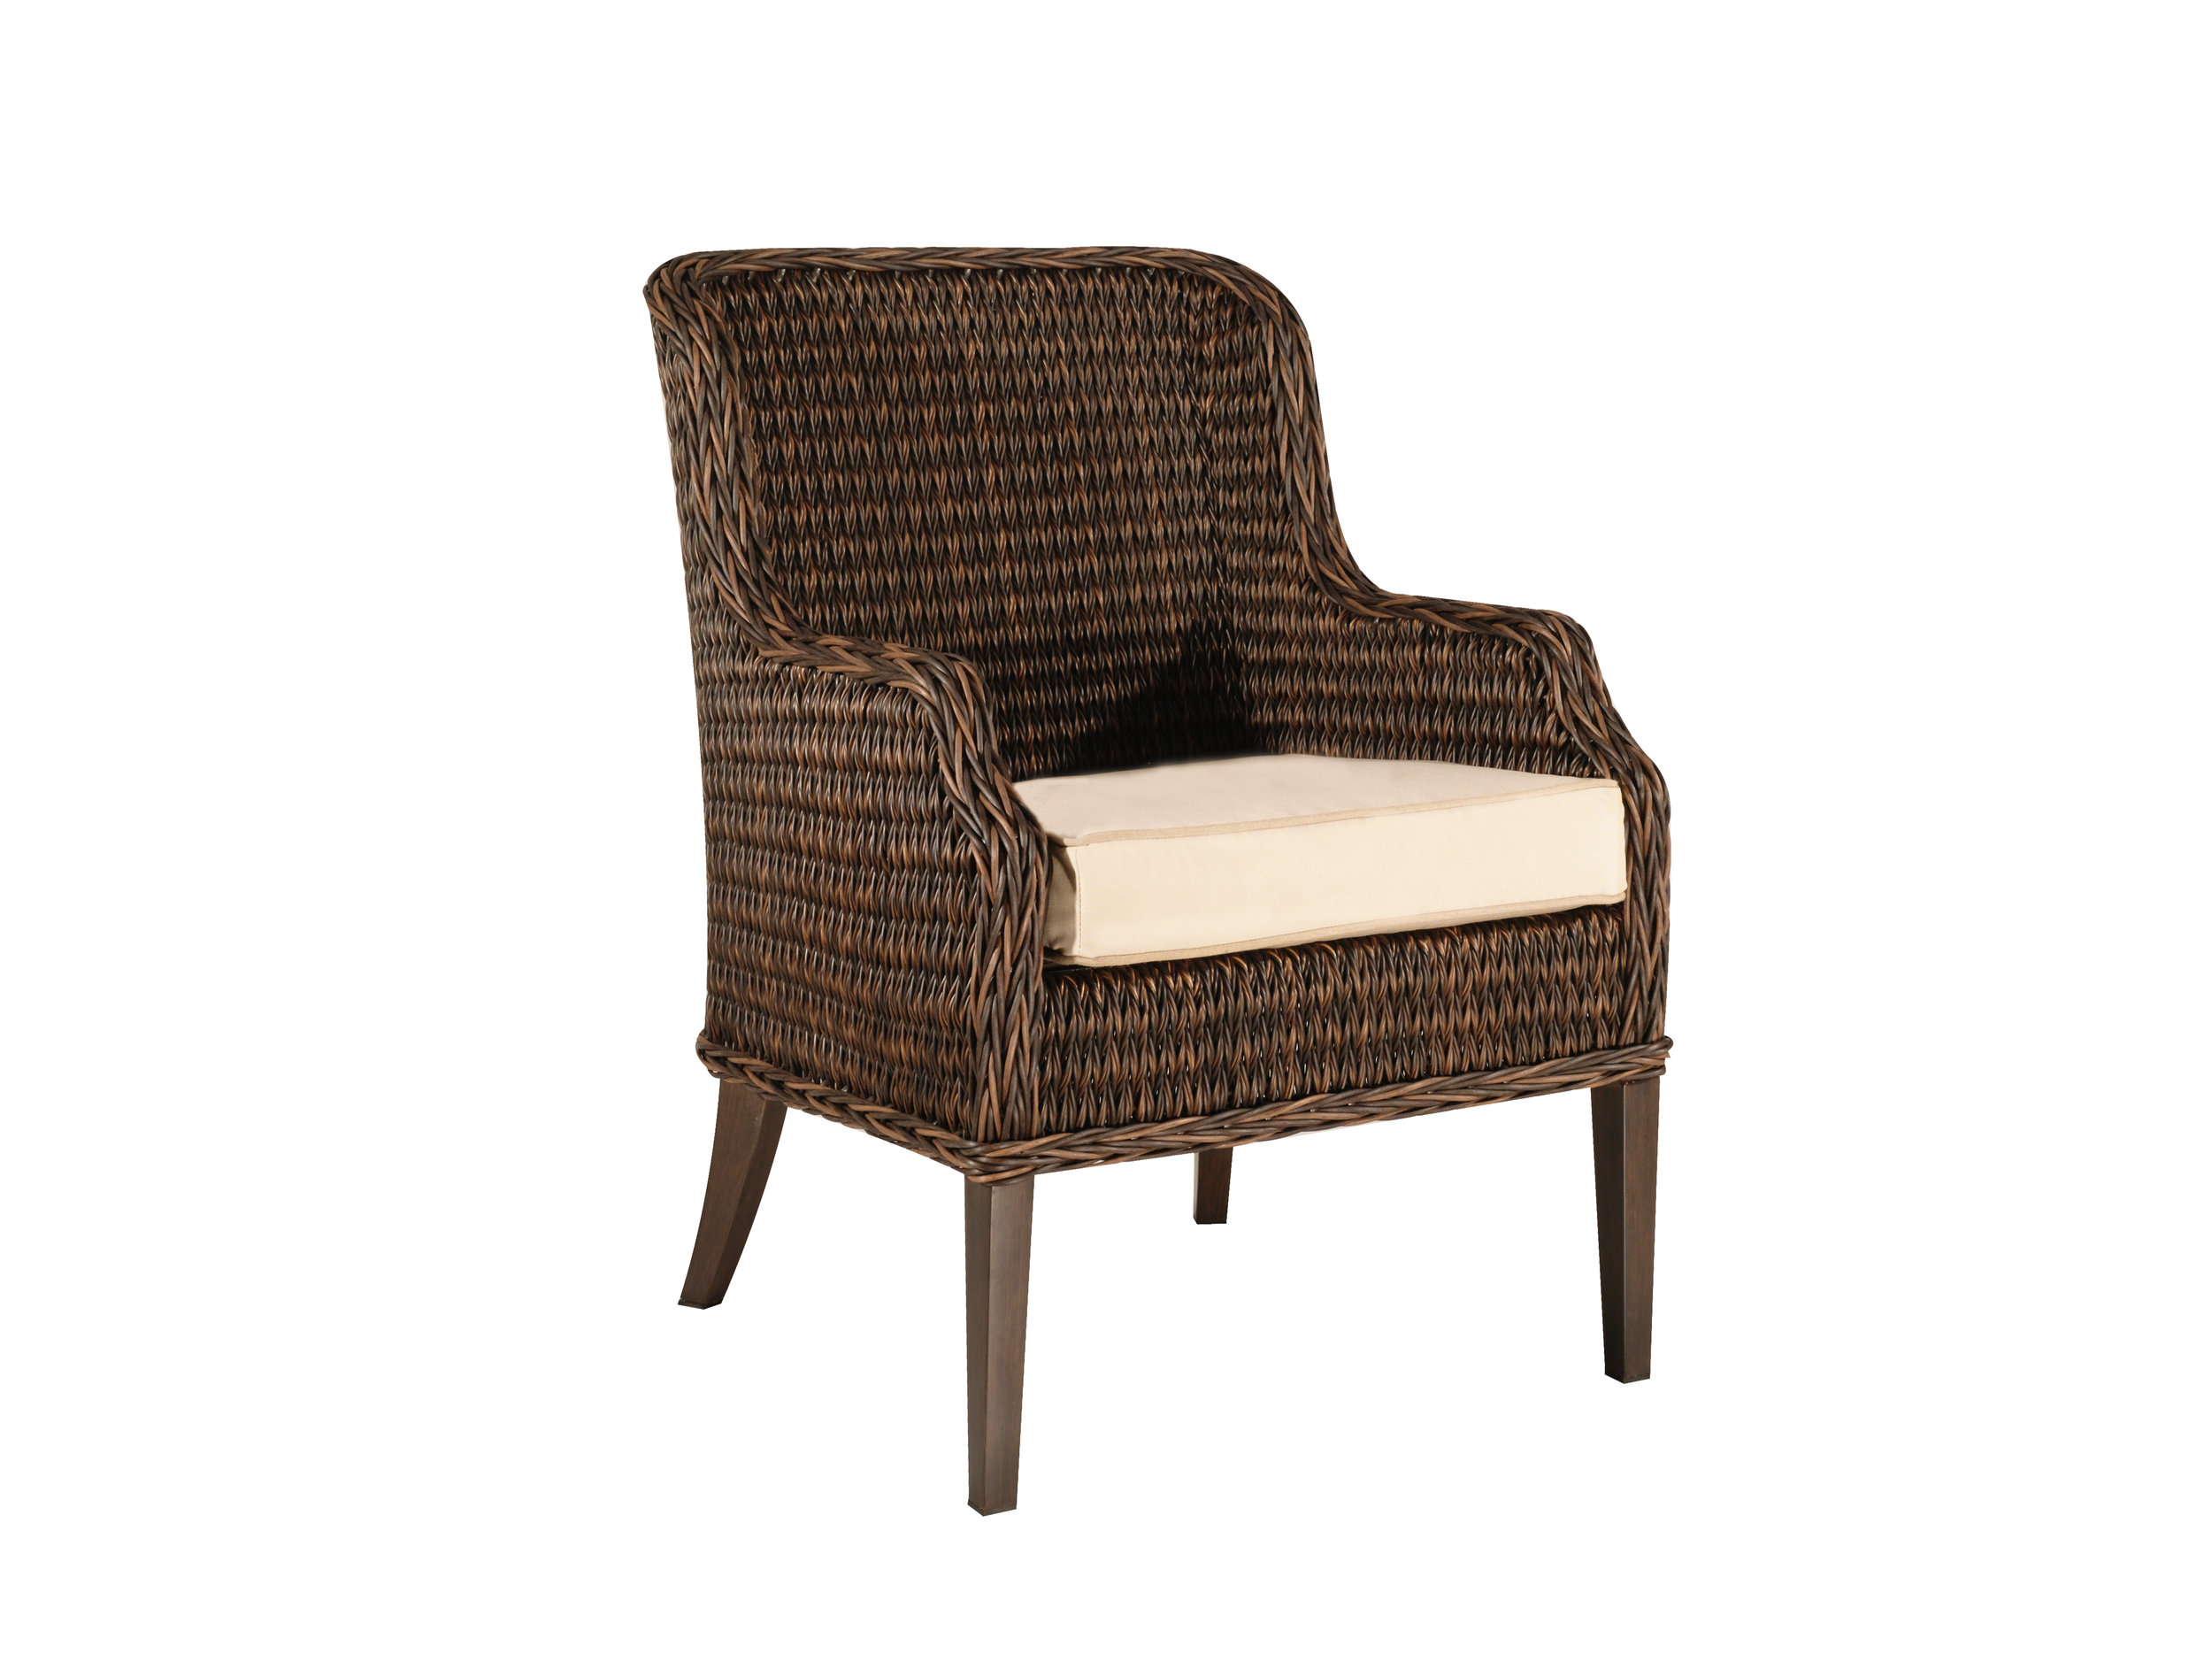 "973021 Monticello Dining Chair   24.2"" 276"" x 36"""